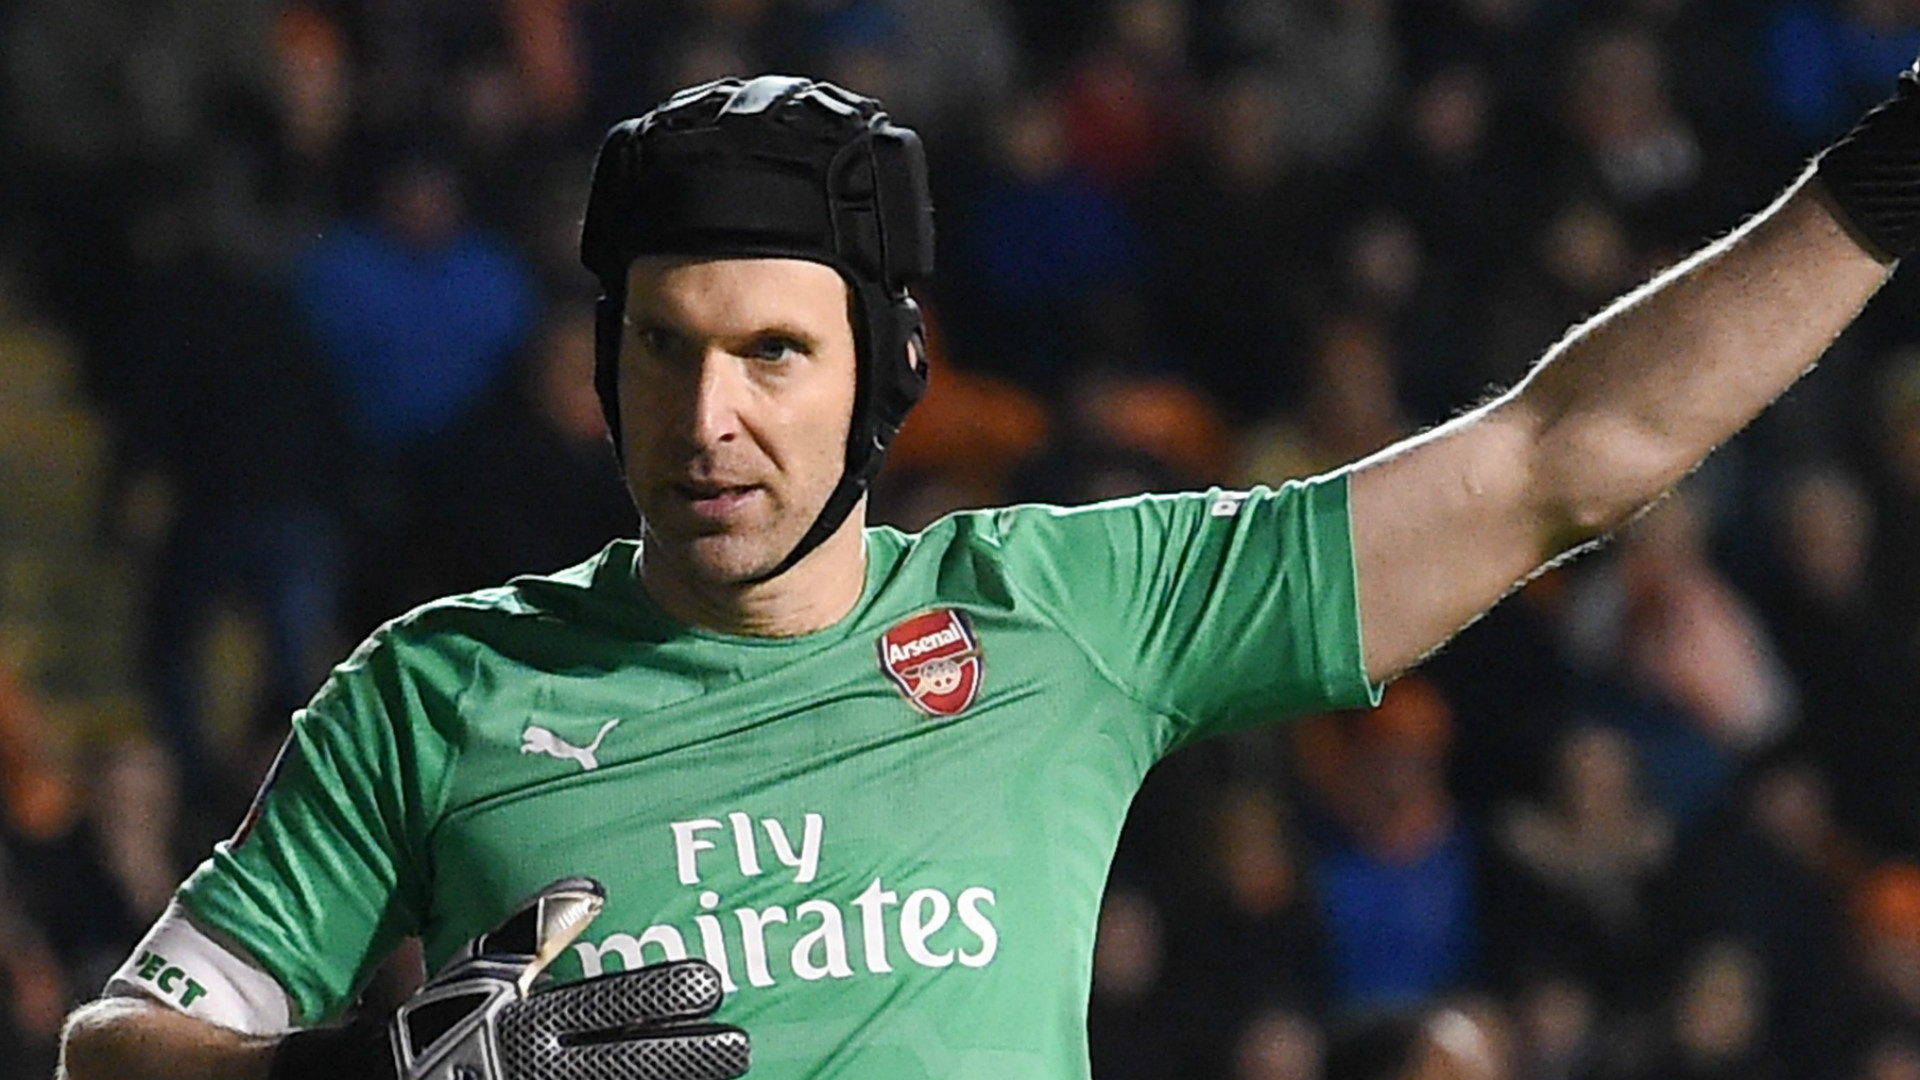 https://images.performgroup.com/di/library/GOAL/5d/d1/petr-cech-arsenal-2018-19_164fltkehbdov1hykfain8un65.jpg